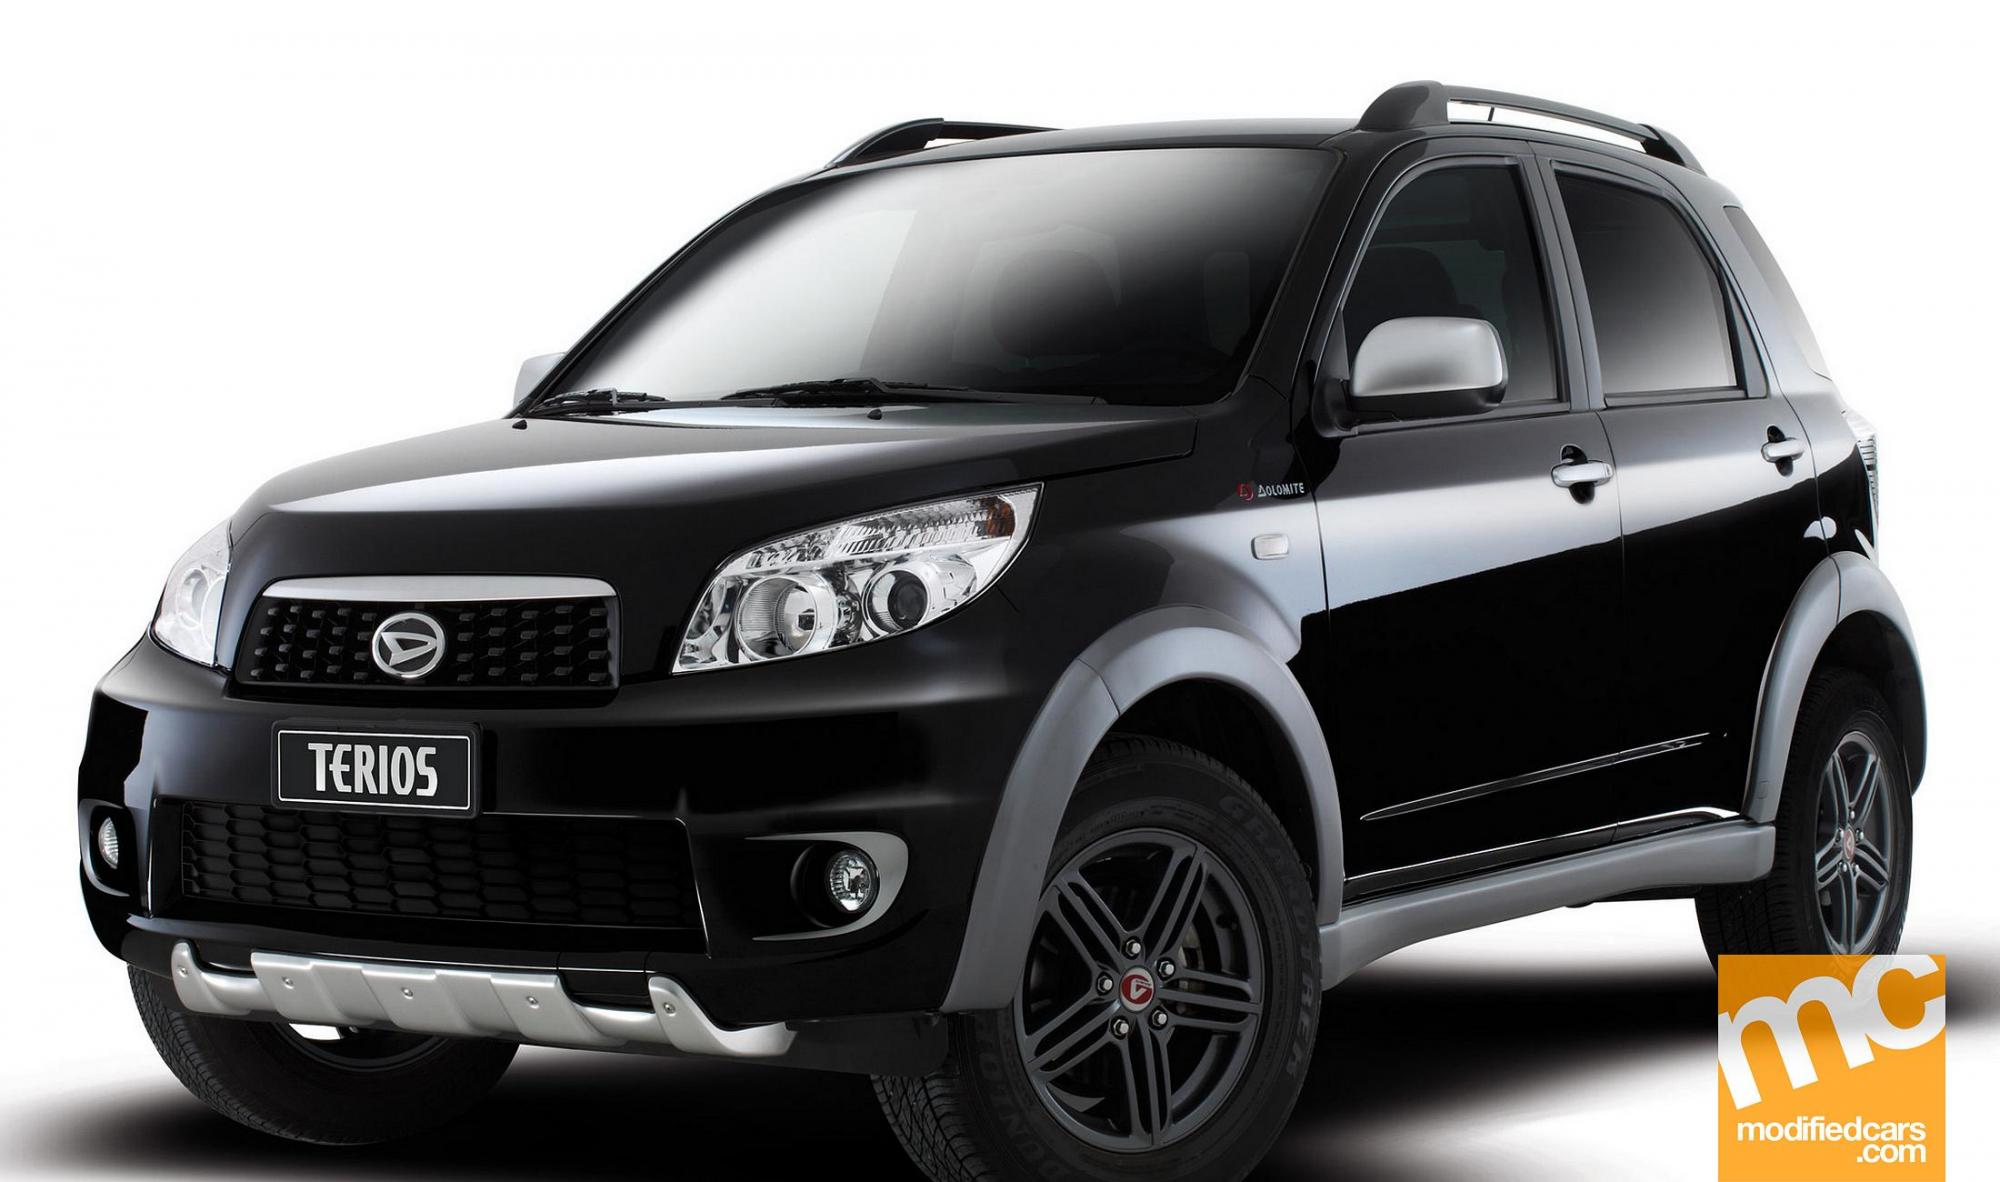 Comparison - Daihatsu Terios 7 seater 2015 - vs - Jeep